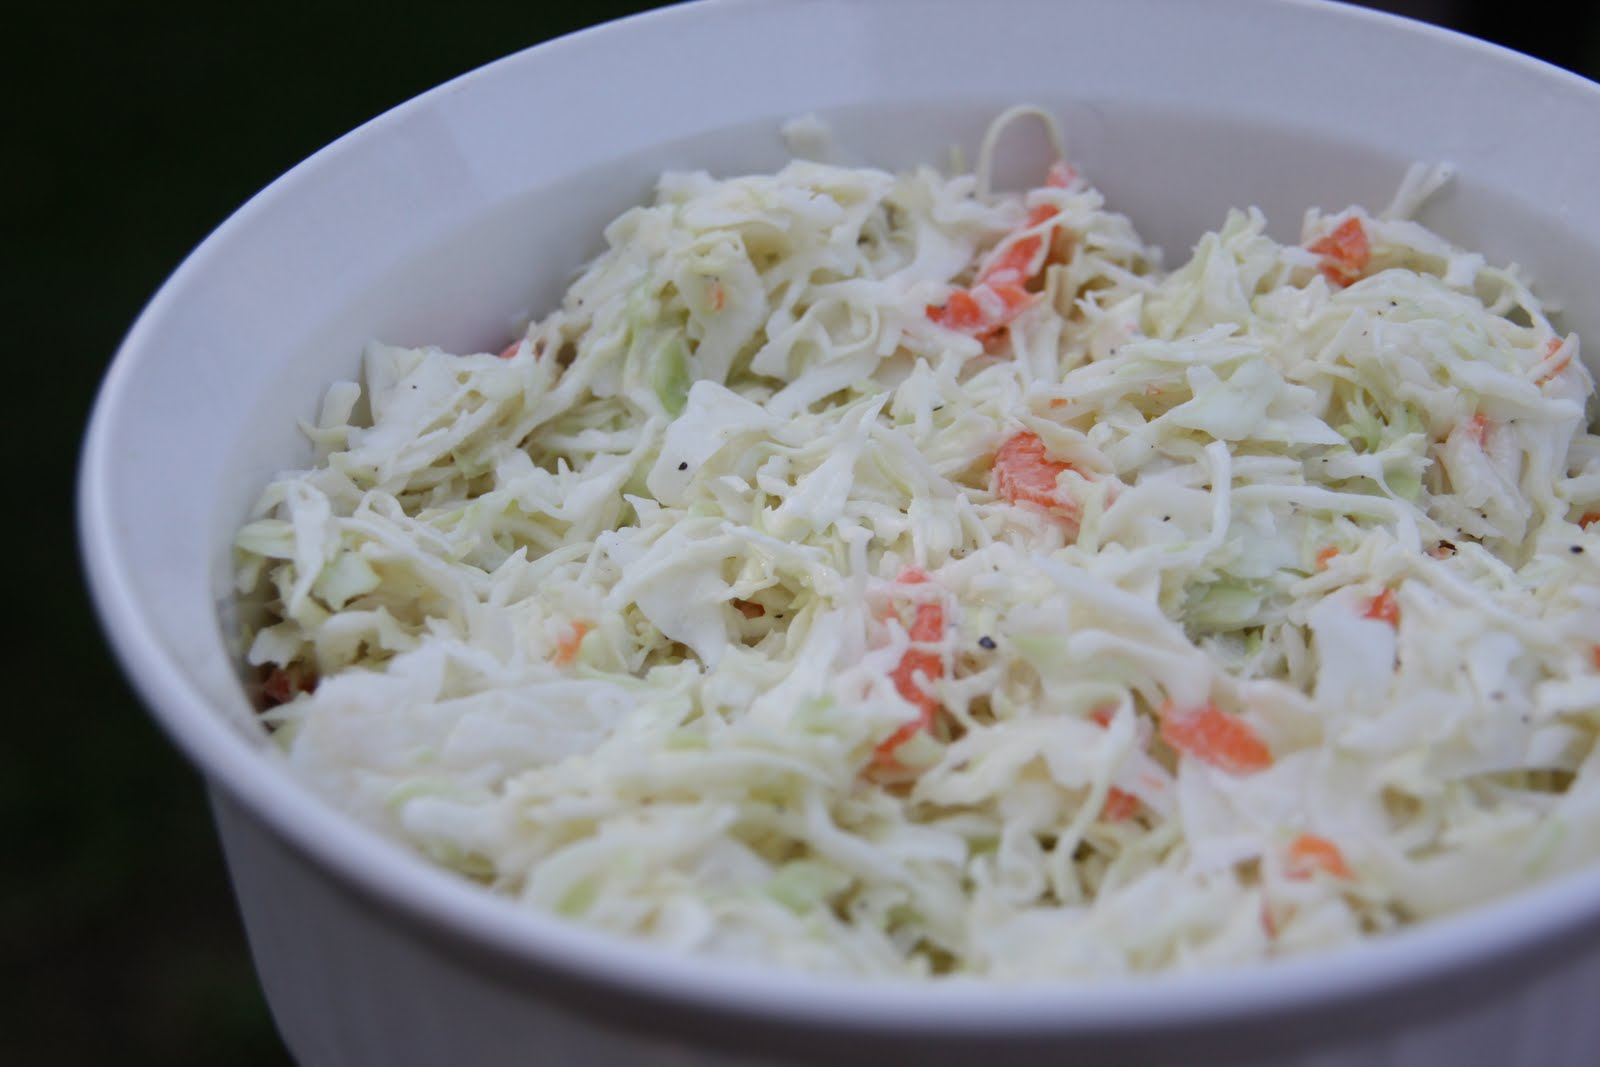 Little Spatula: Coleslaw